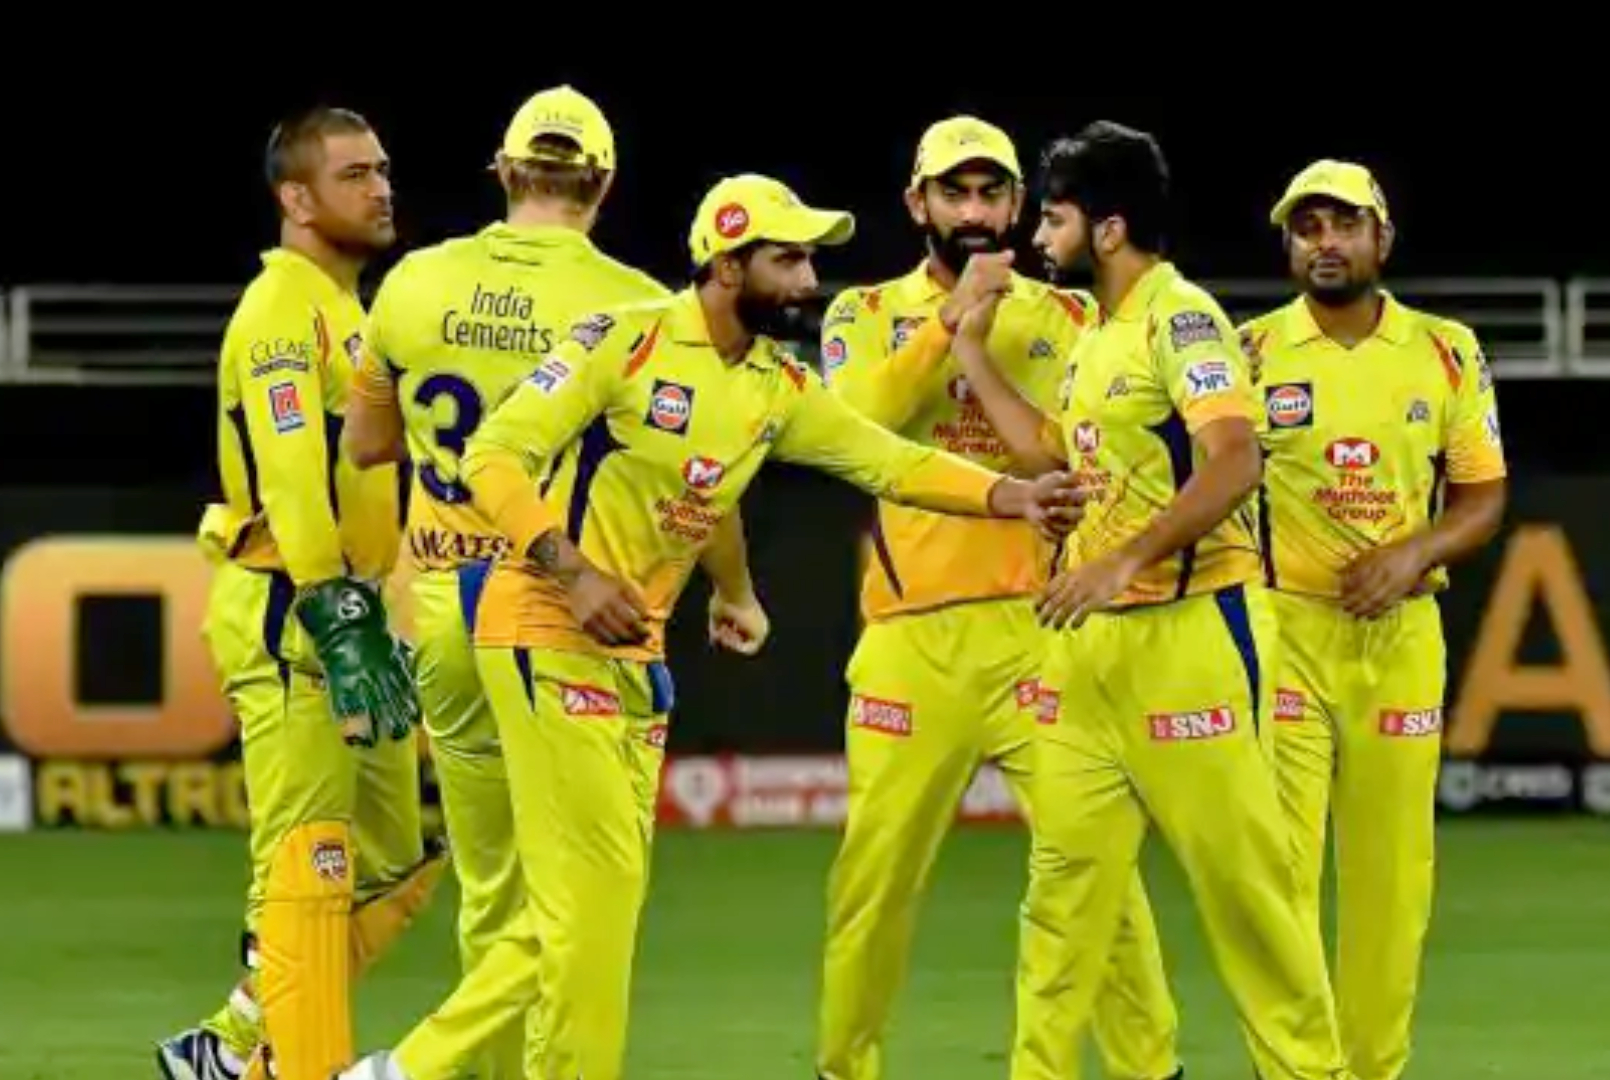 We Believe Dhoni Will Lead Us In IPL 2021 Too Says CSK CEO